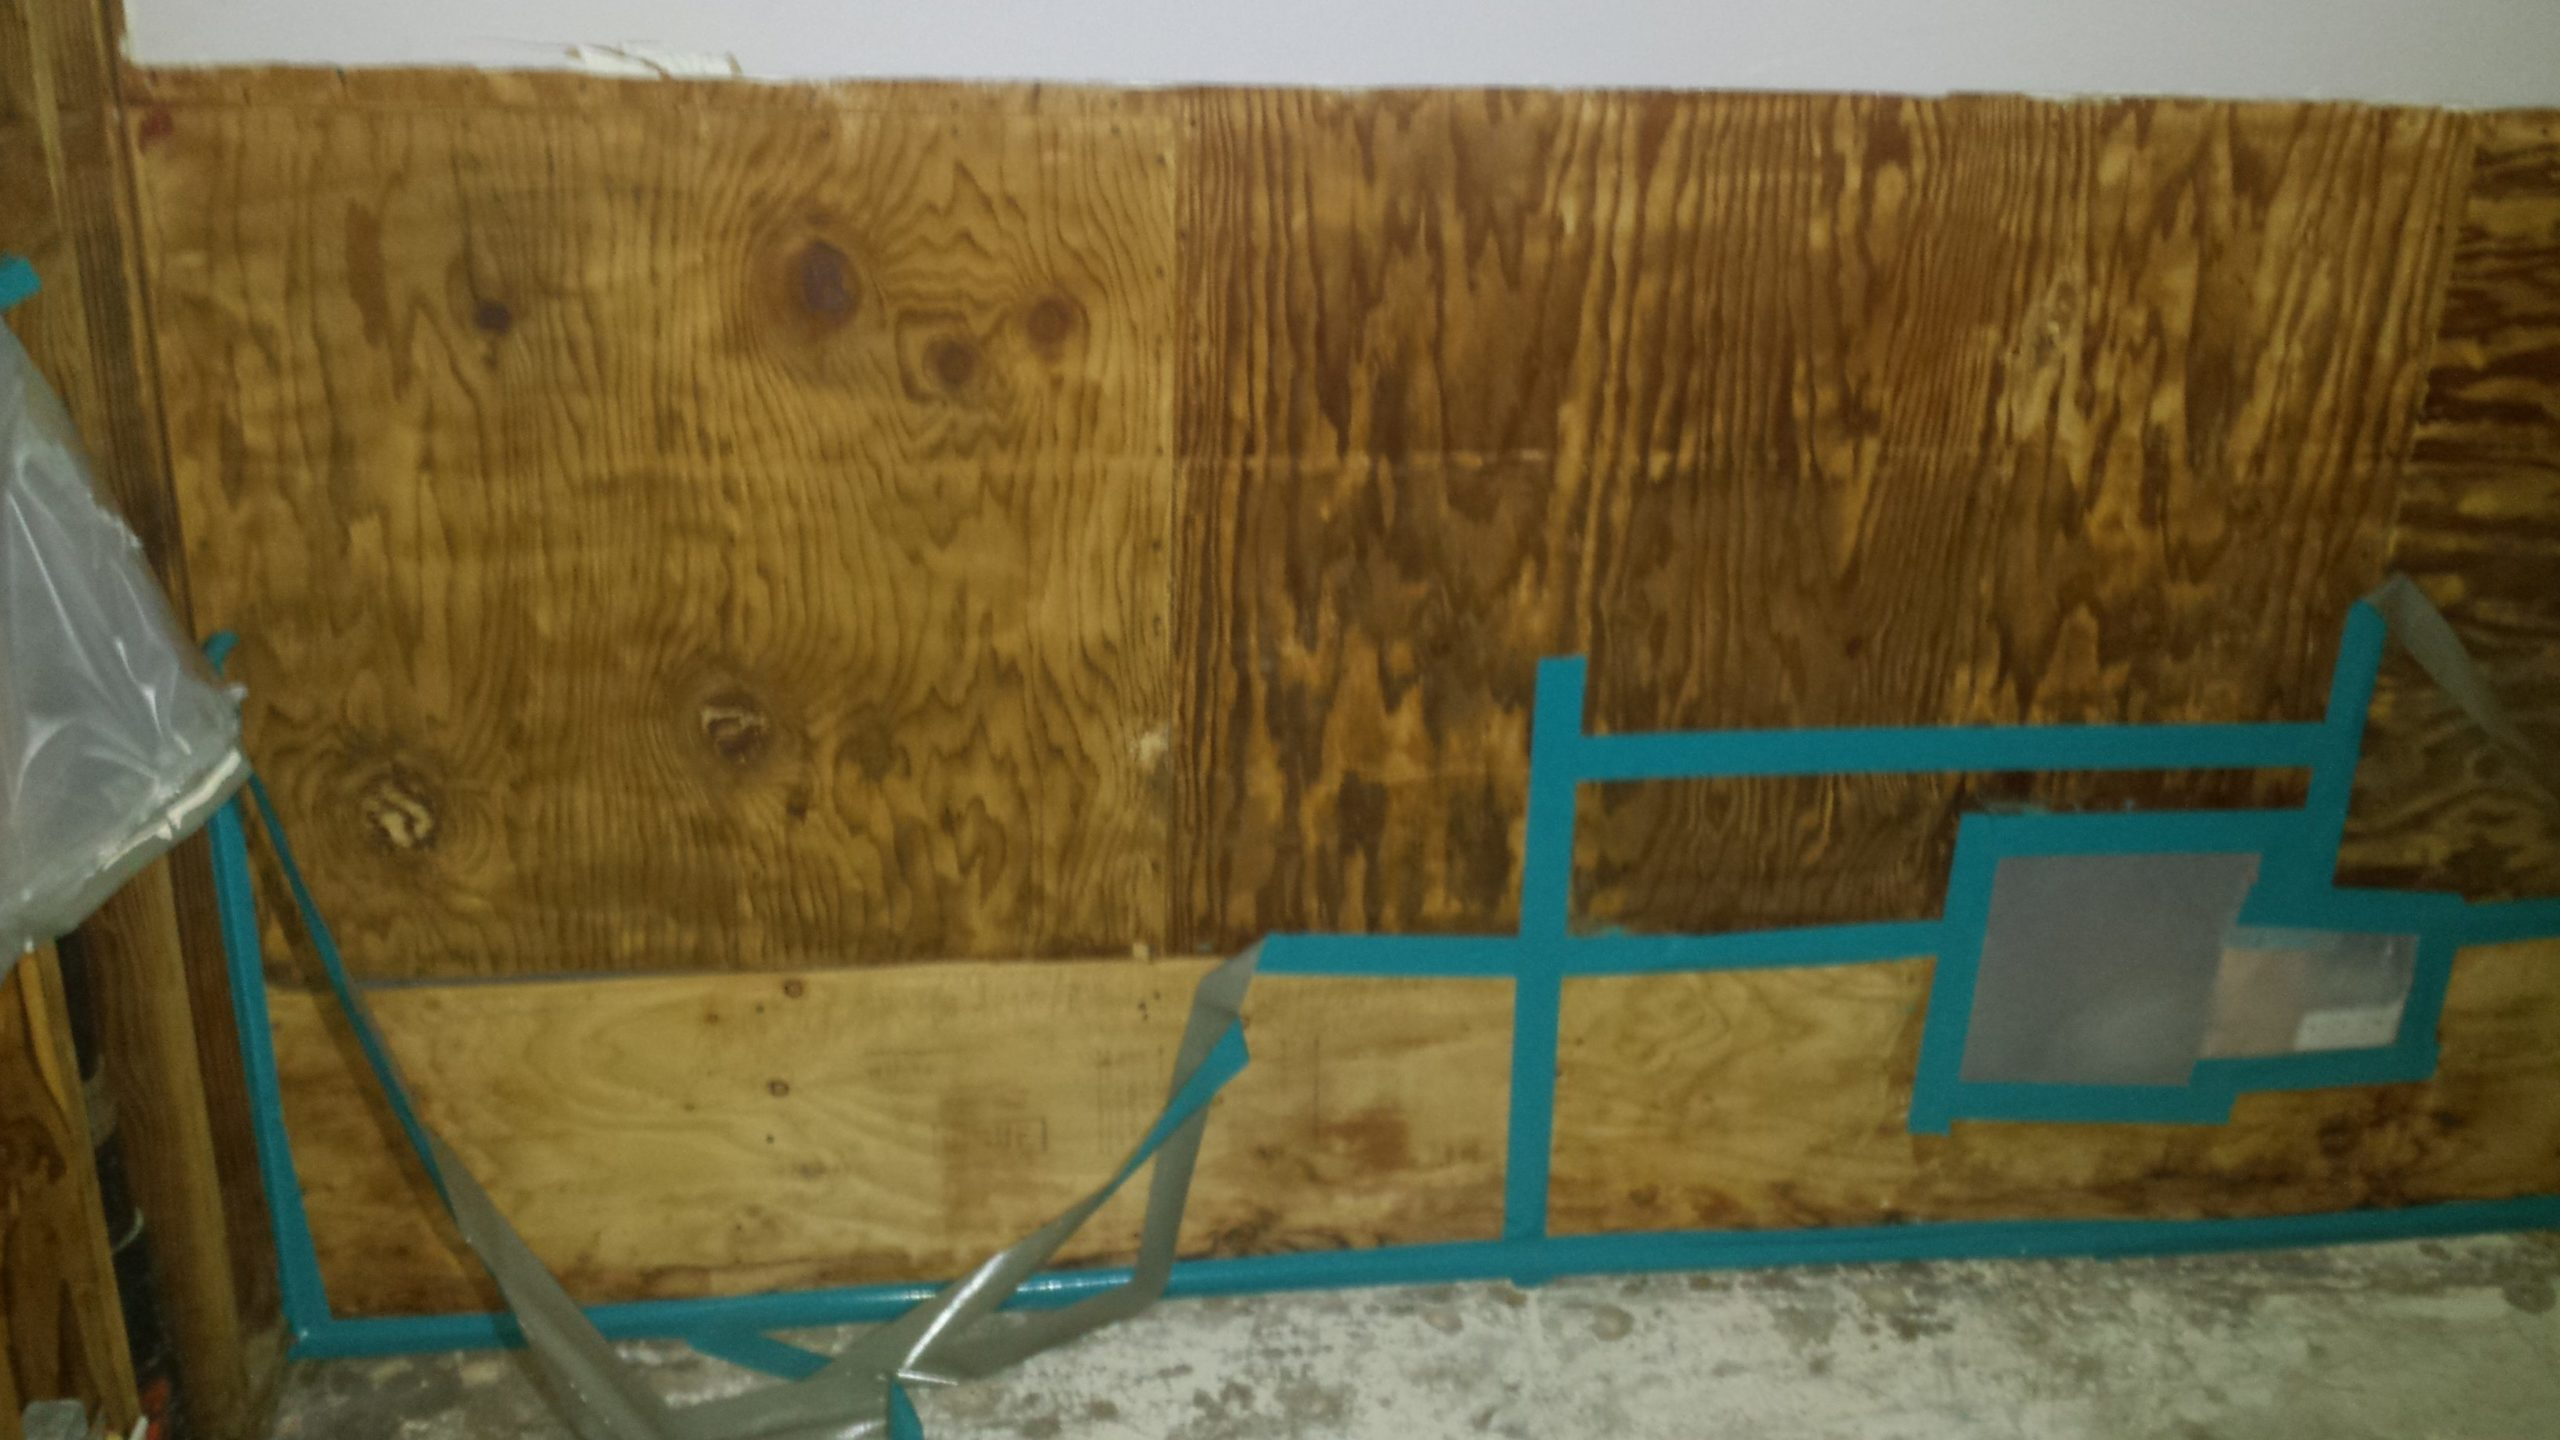 Taping the joints between sheets of plywood